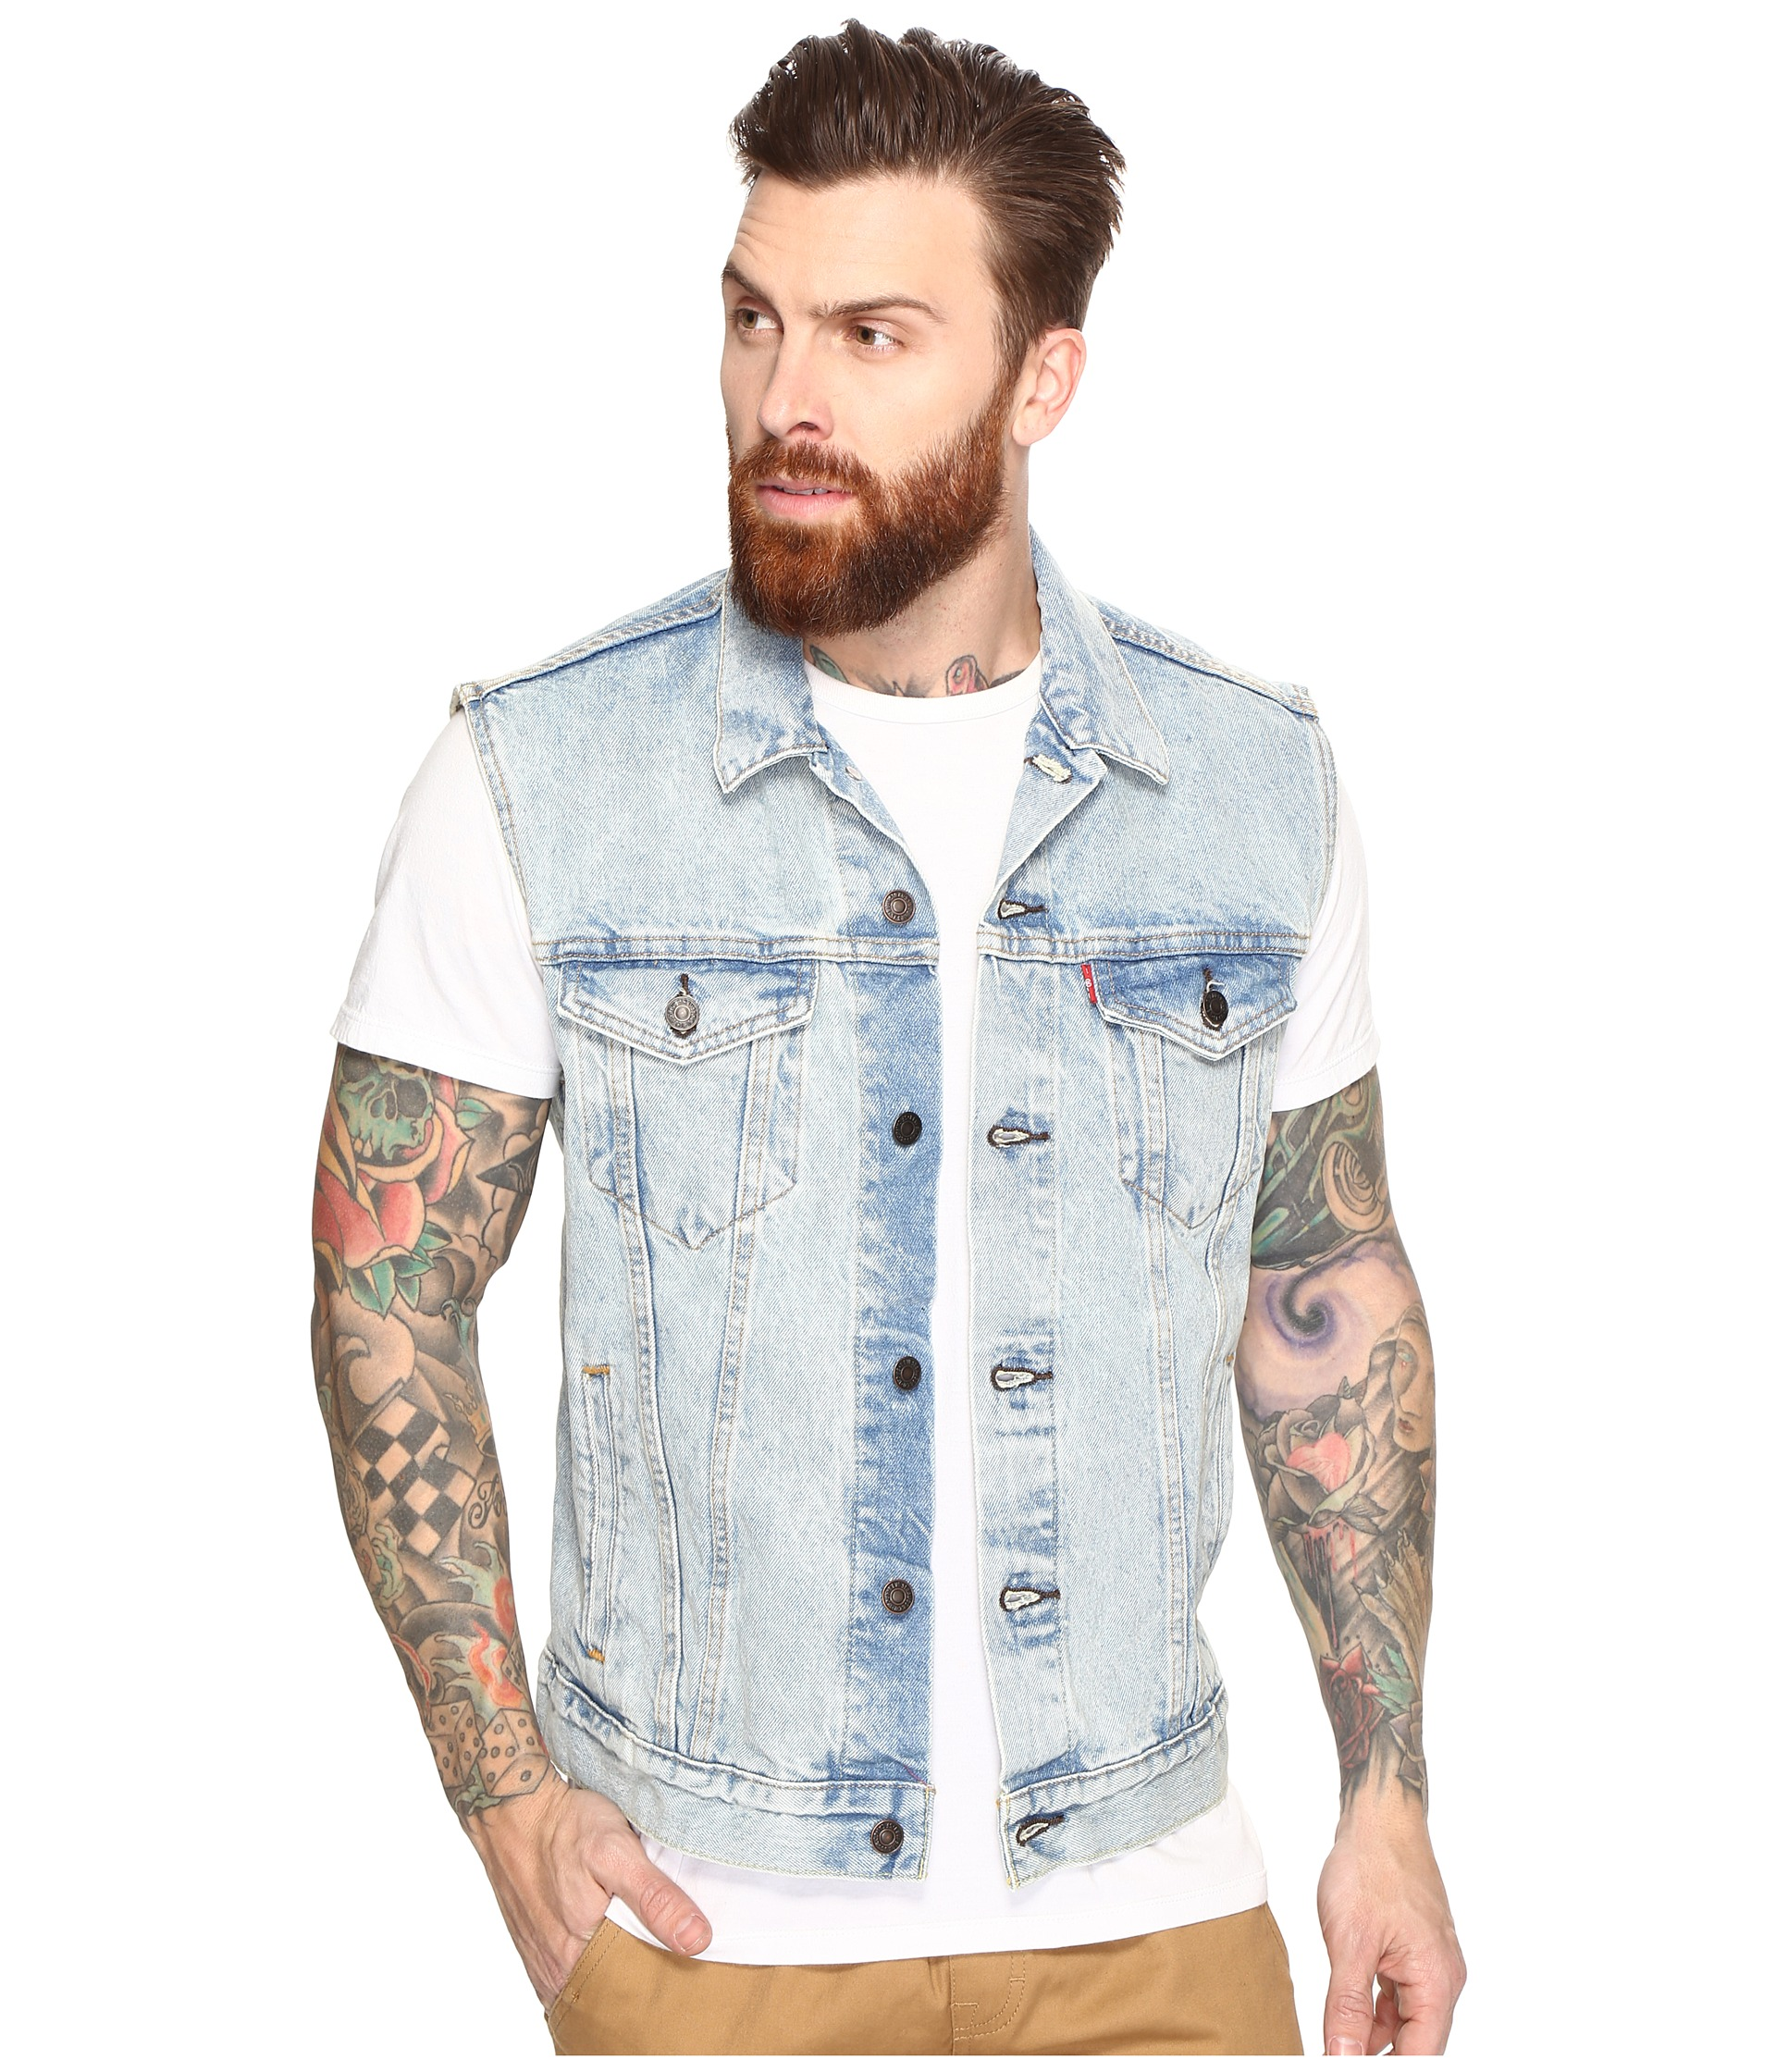 Shop the Latest Collection of Trucker Jackets & Coats for Men Online at shopnow-jl6vb8f5.ga FREE SHIPPING AVAILABLE!